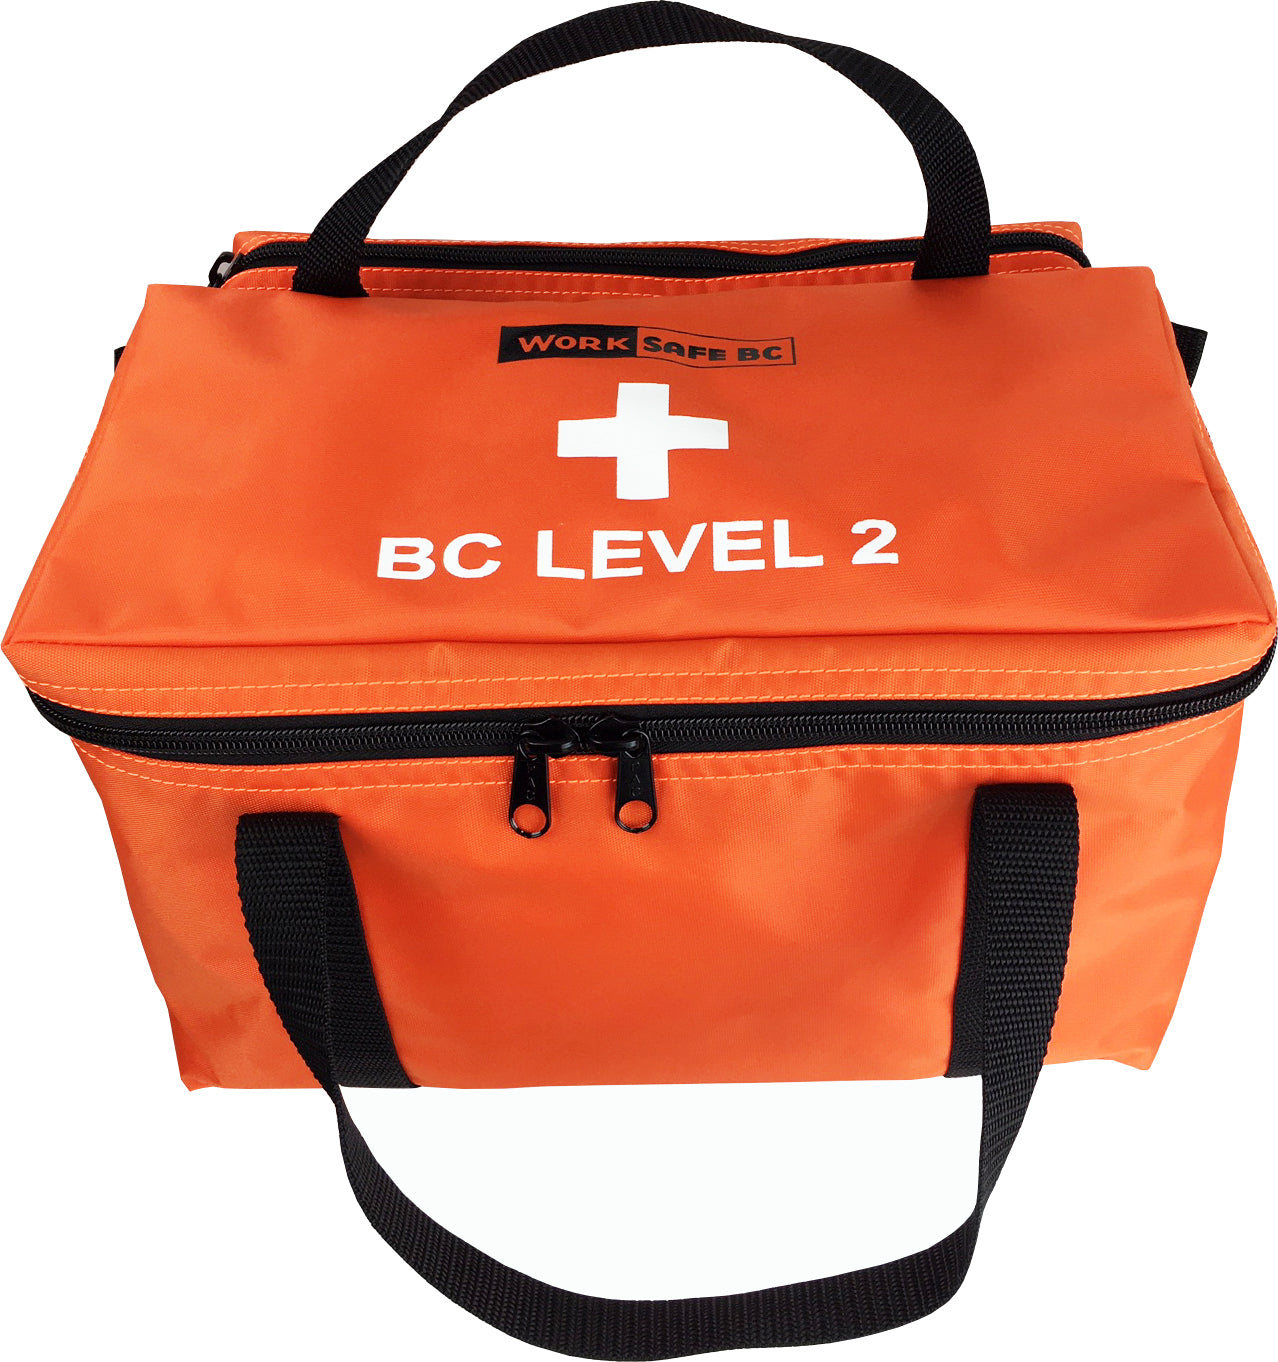 MKIT3040 - WorkSafeBC Level 2 First Aid Kit